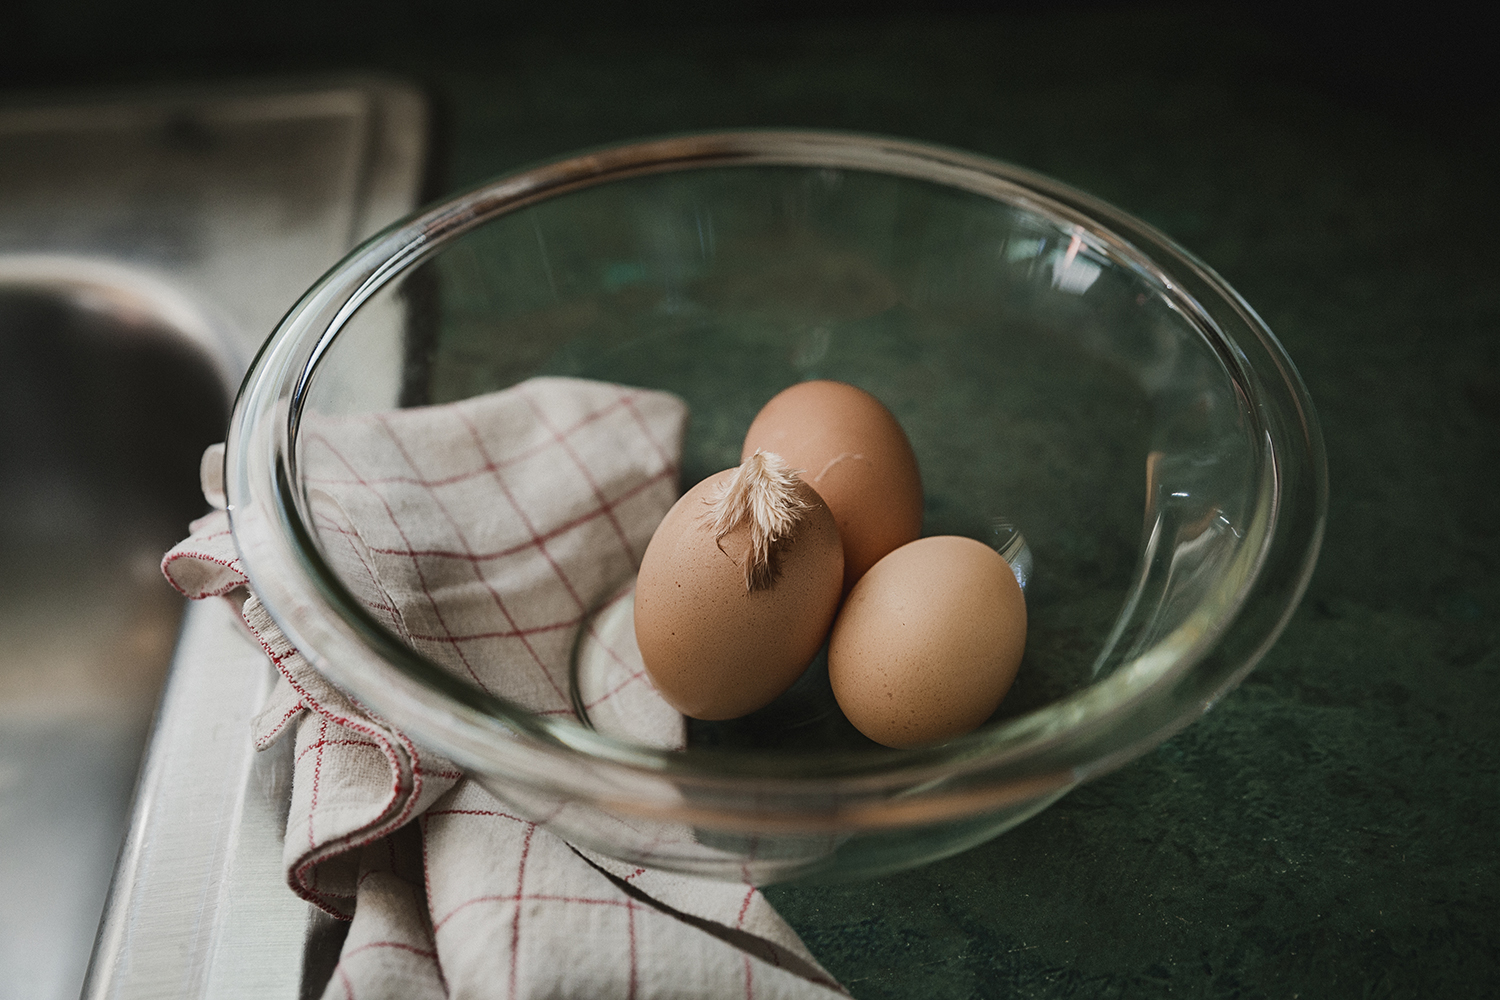 egg_with_feather_0005.jpg